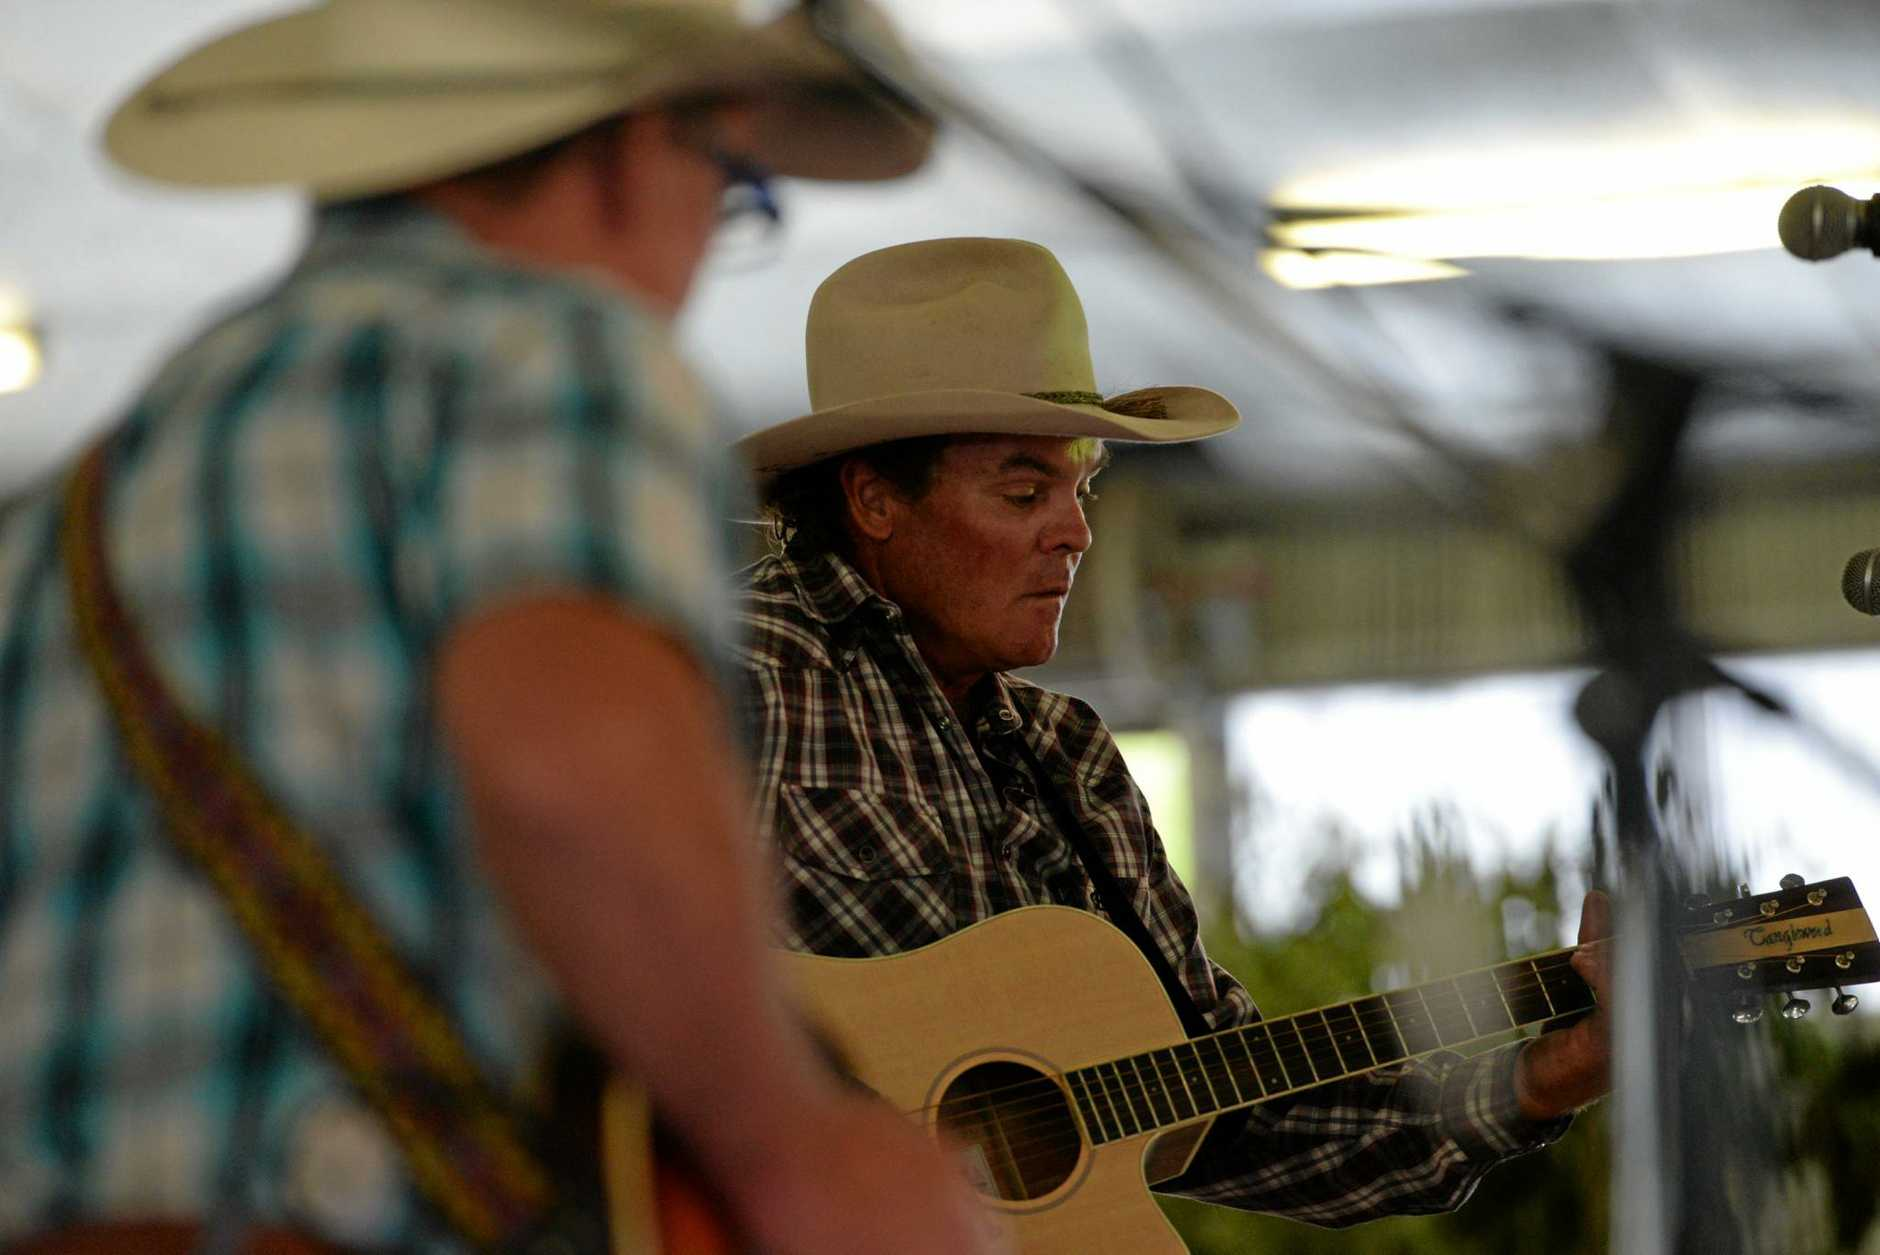 FATHER'S DAY: Take dad to tomorrow's Bundaberg Country Music Club is holding an open social day.